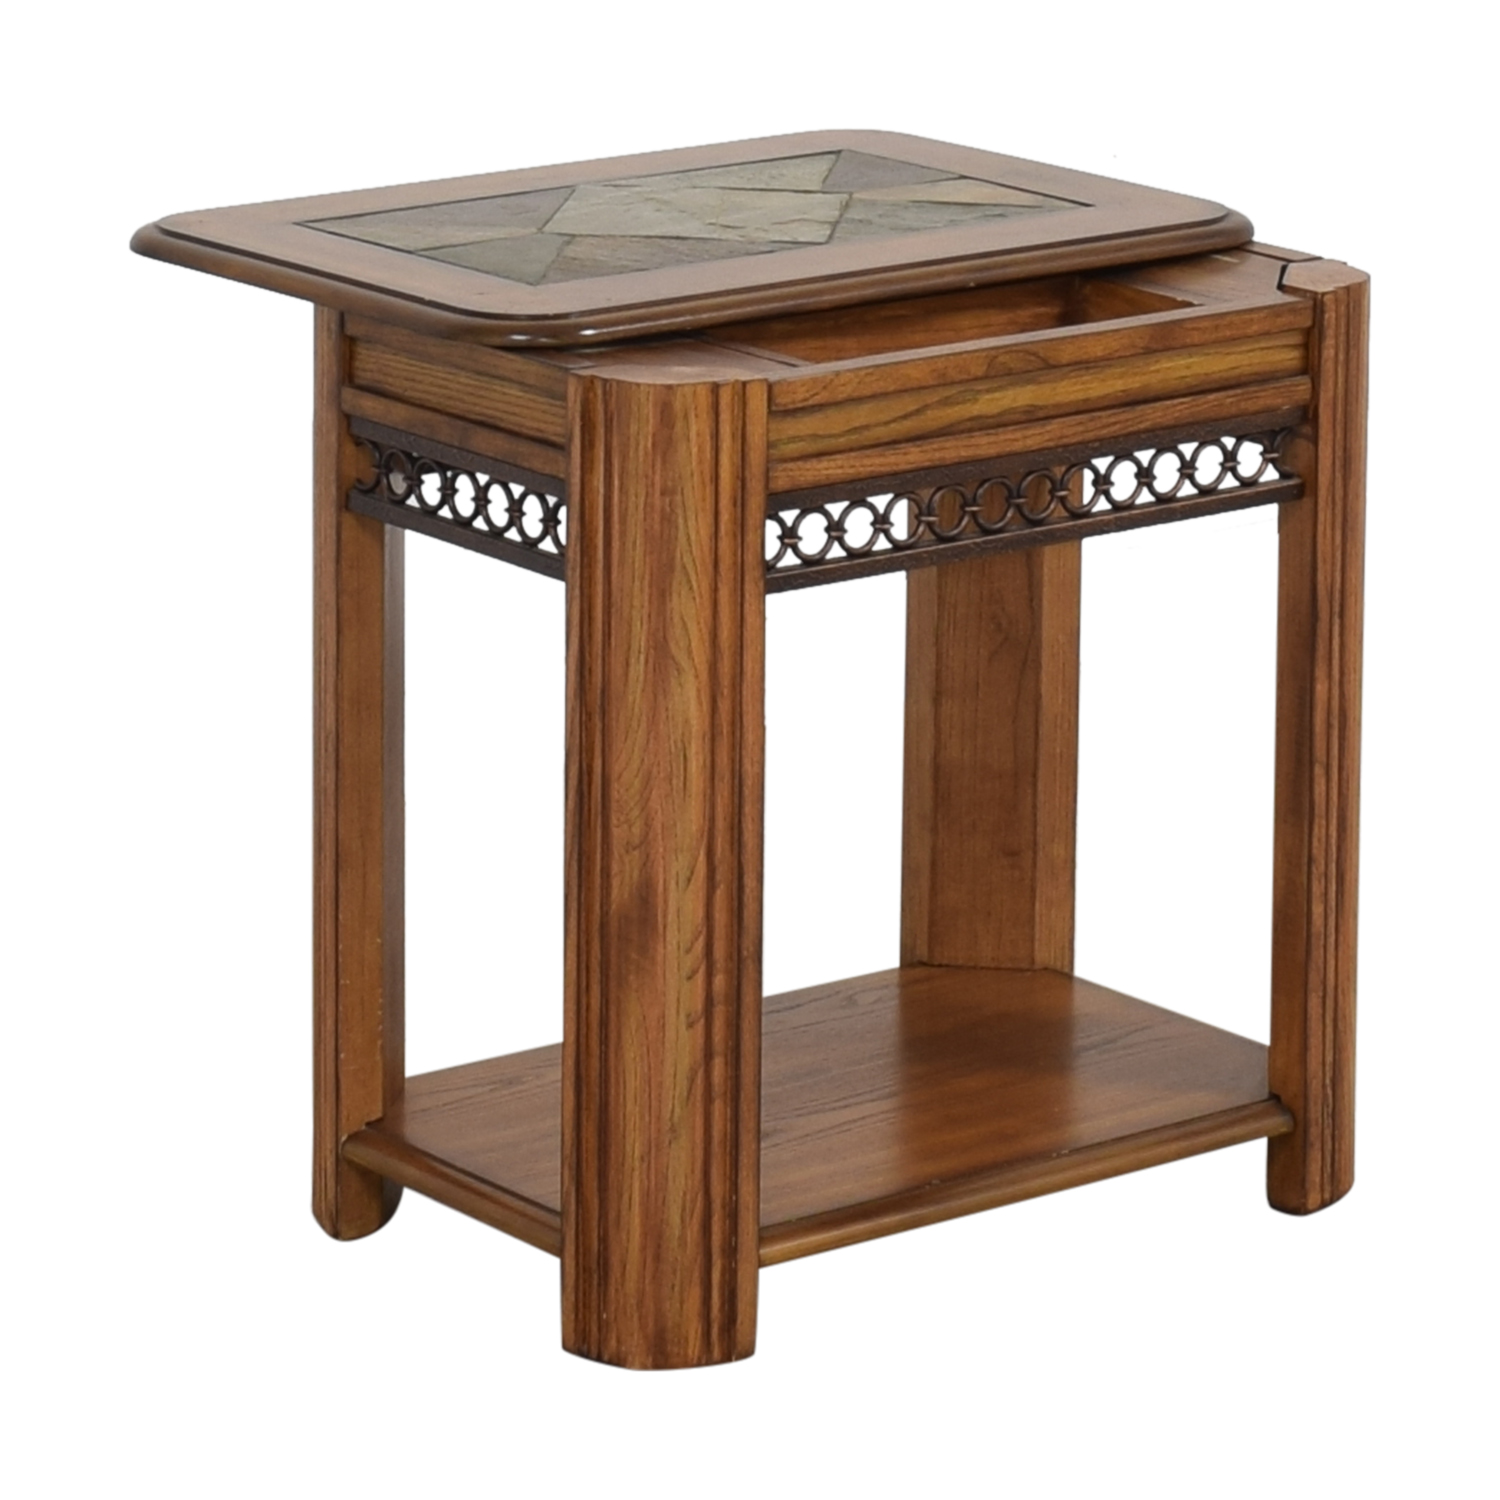 Raymour & Flanigan Raymour & Flanigan Sliding Top Chairside Table pa